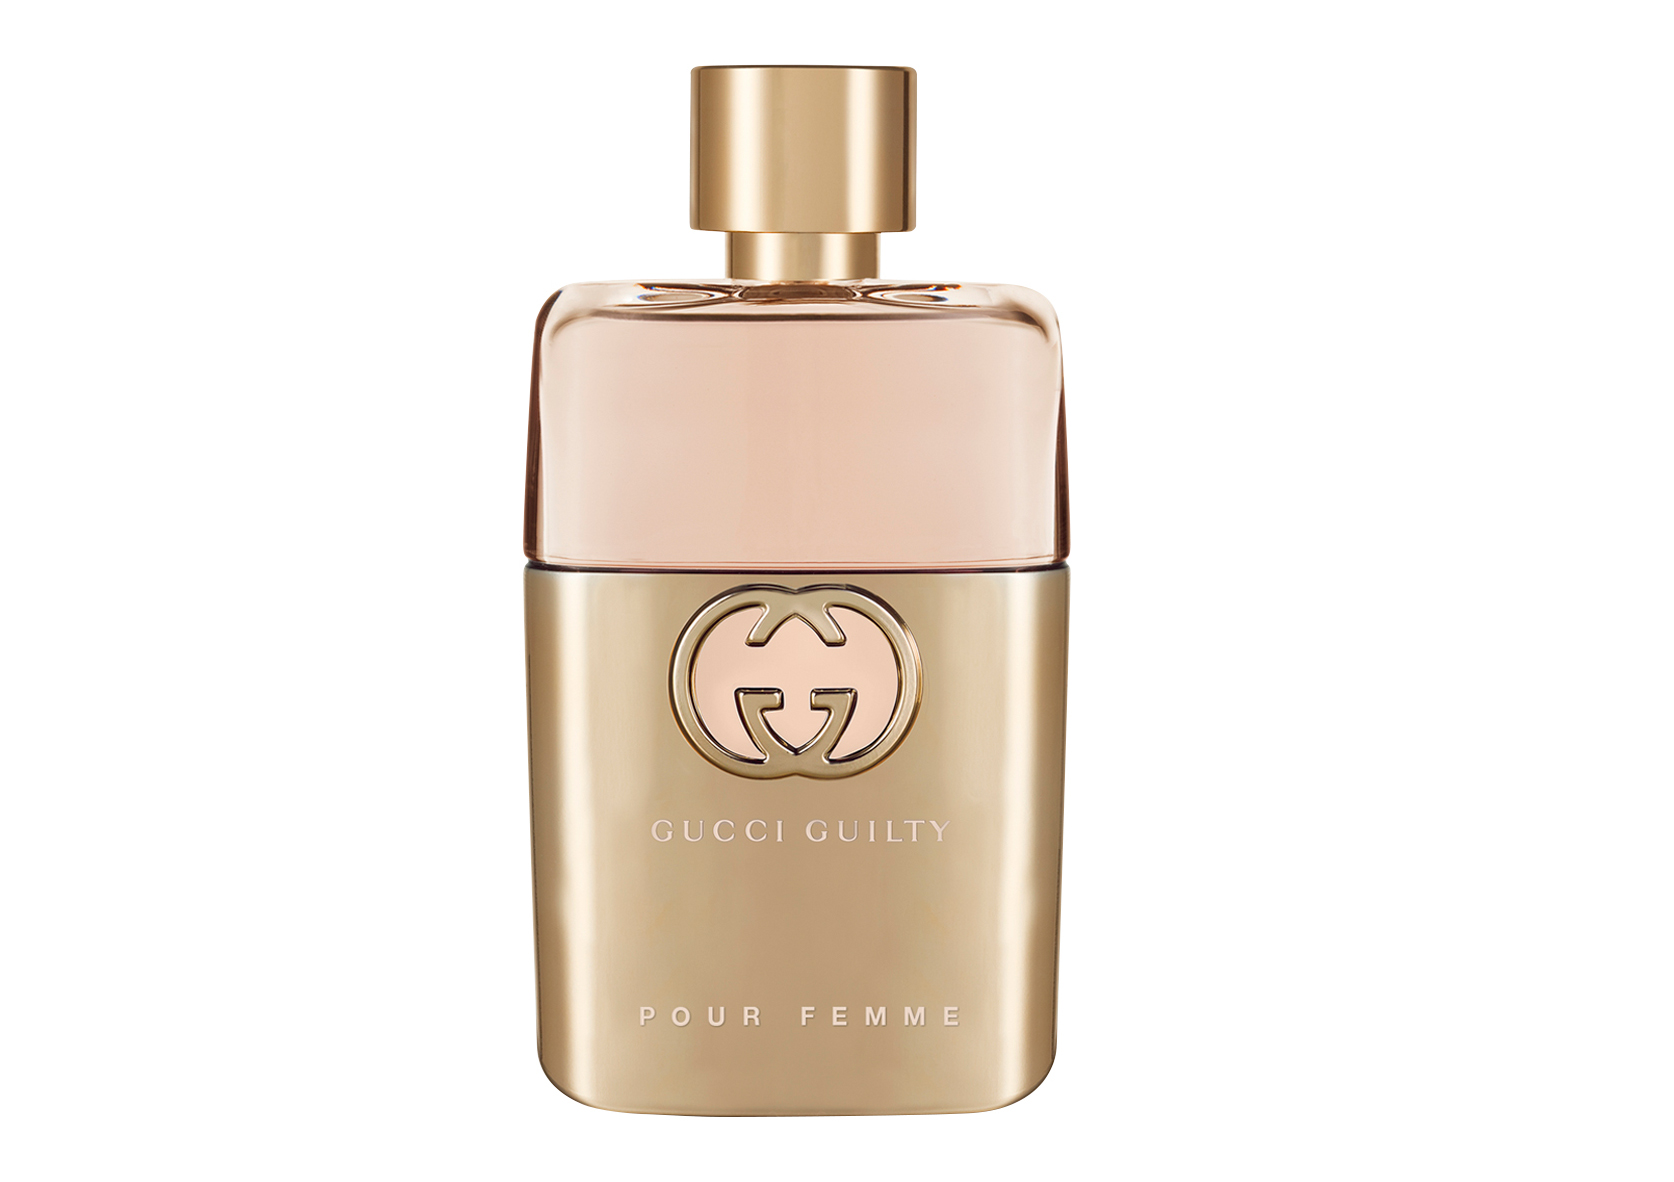 Gucci-Guilty-fragrance.jpg